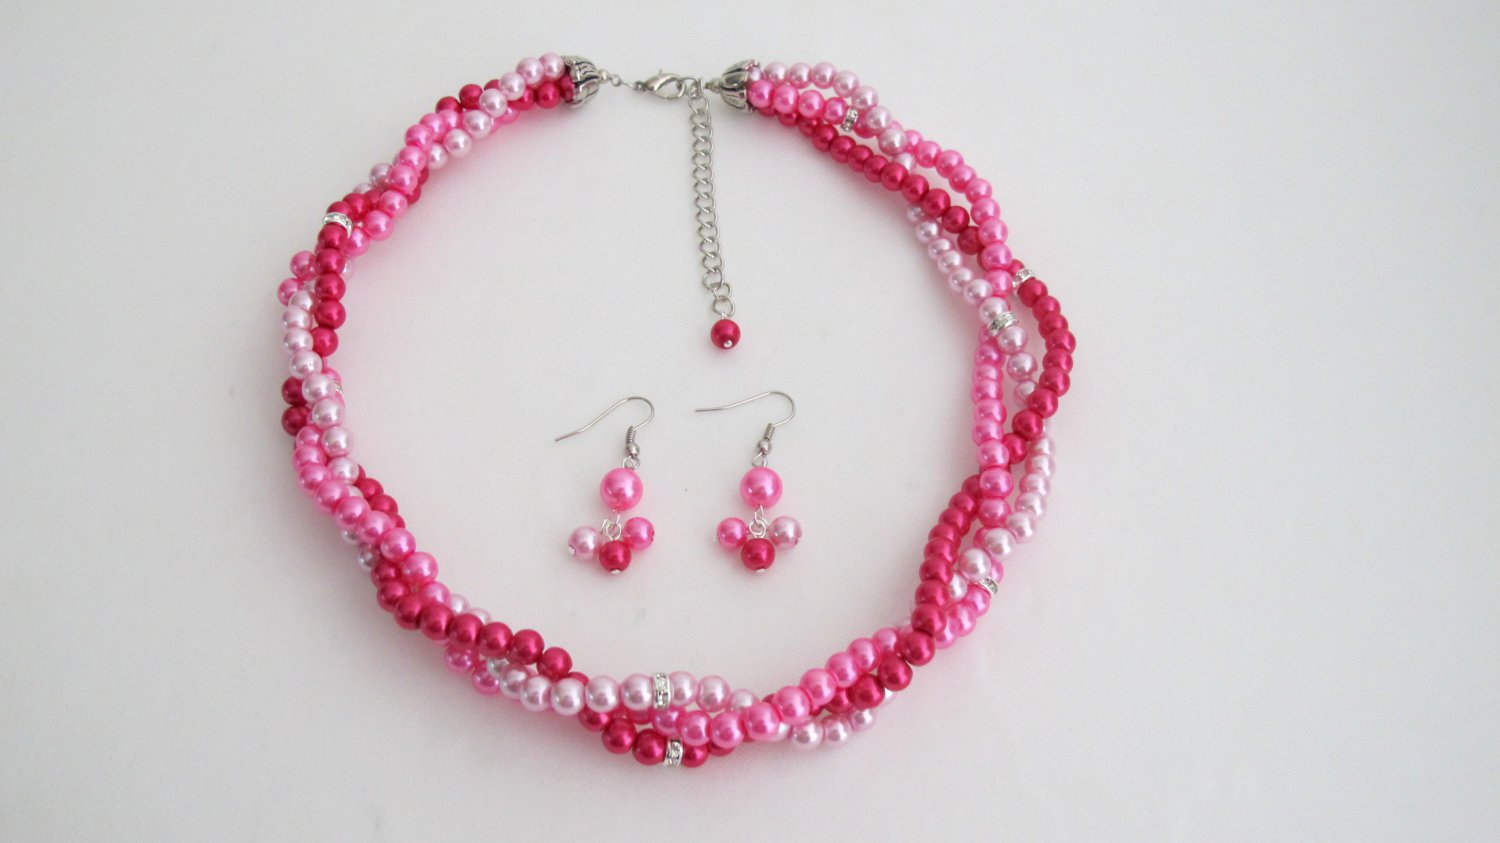 NS1314 Fuchsia Magenta Hot Pink Twisted Statement Three Strand Necklace Earring Set